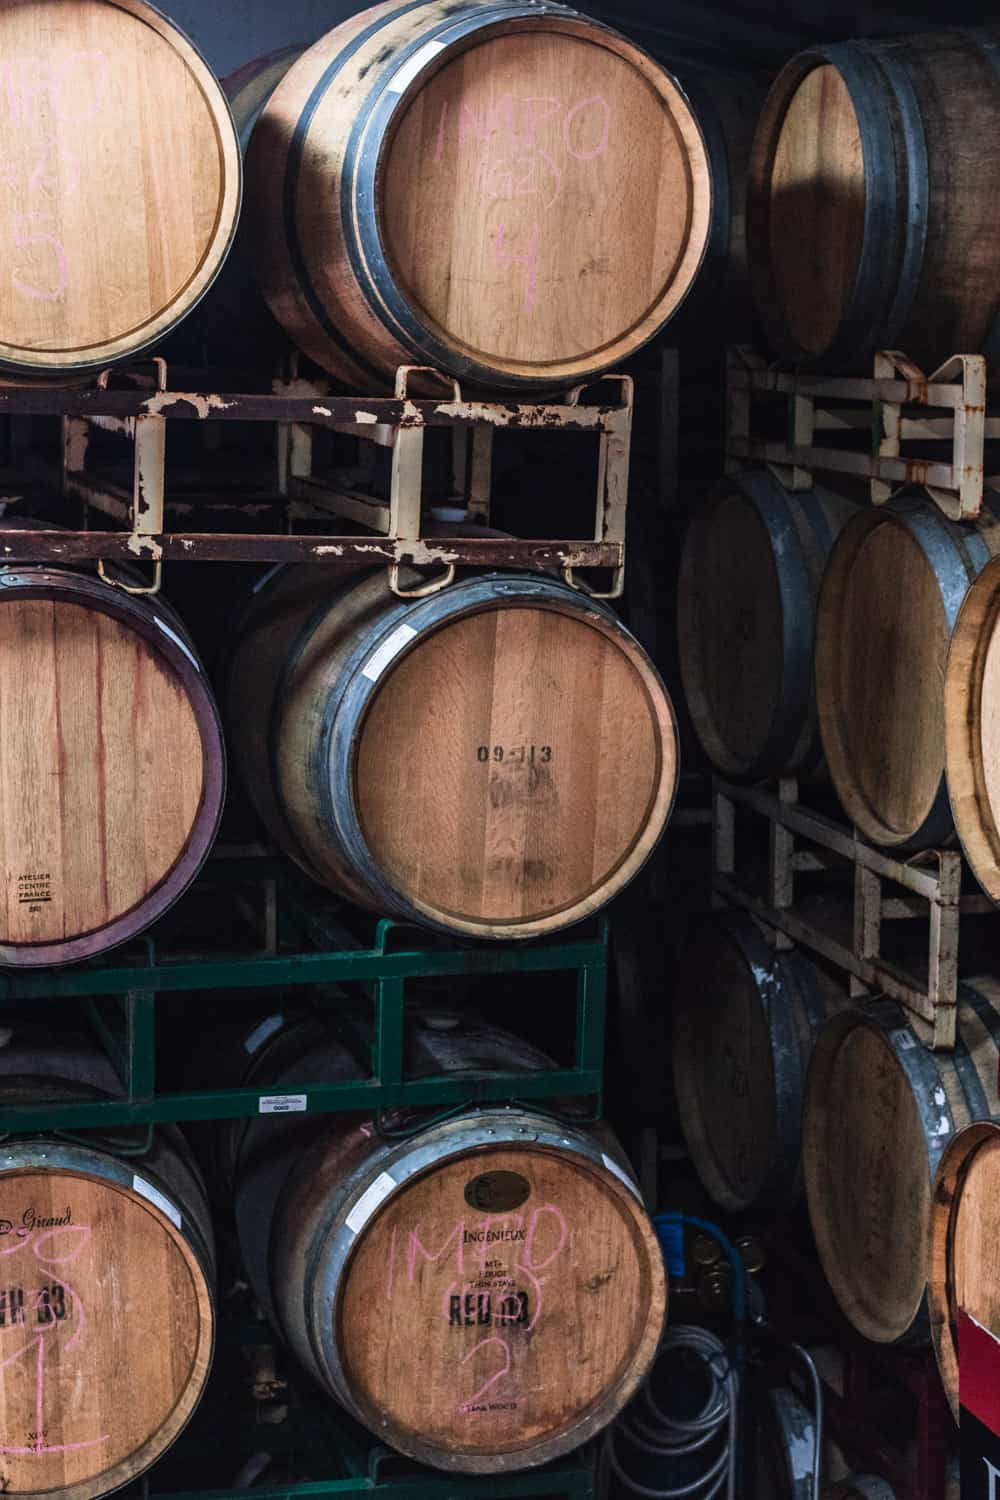 The wooden barrels aging the wine at Davero's biodynamic farm and winery.